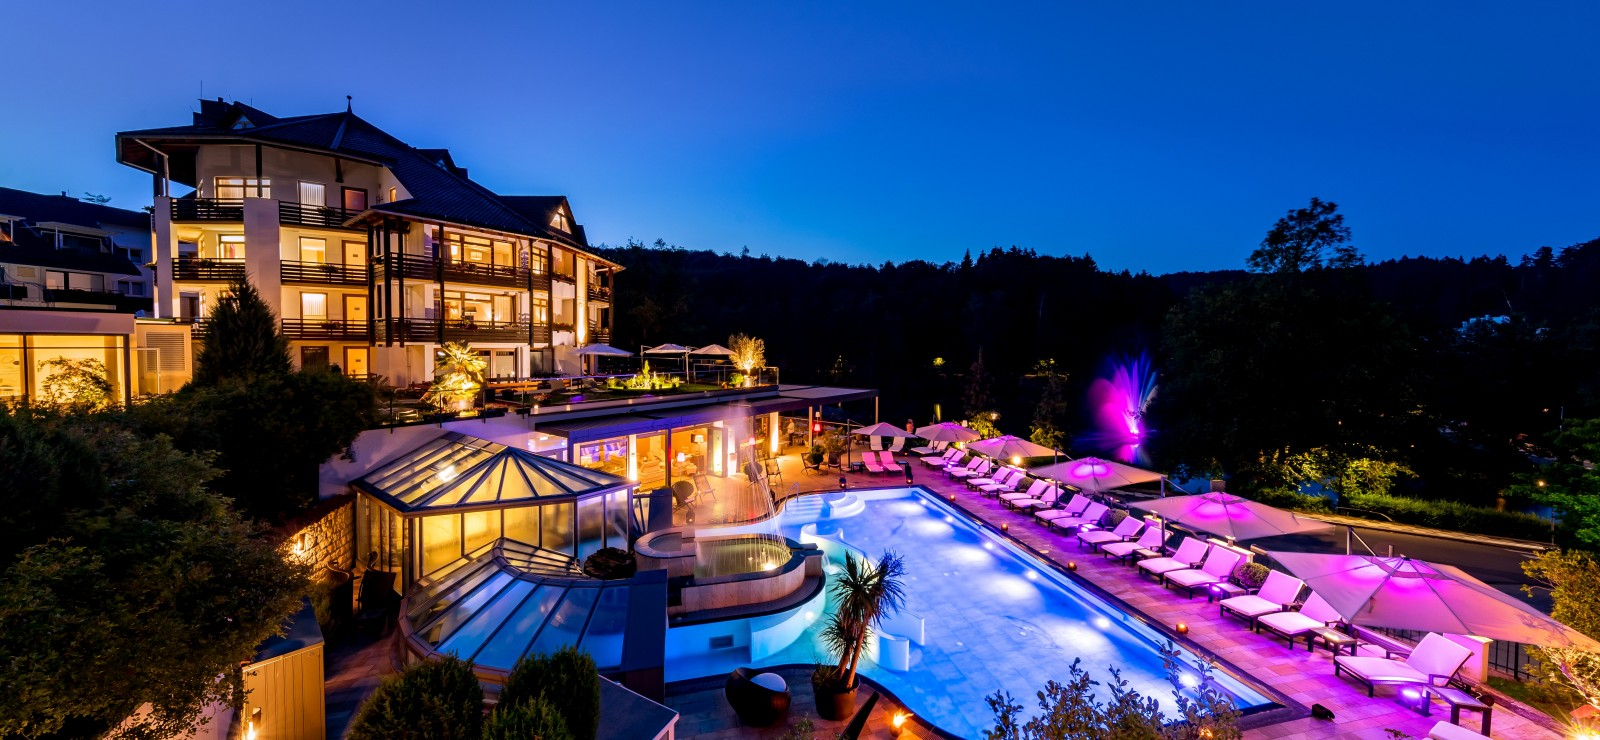 Romantischer Winkel - Spa & Wellness Resort Bilder | Bild 1